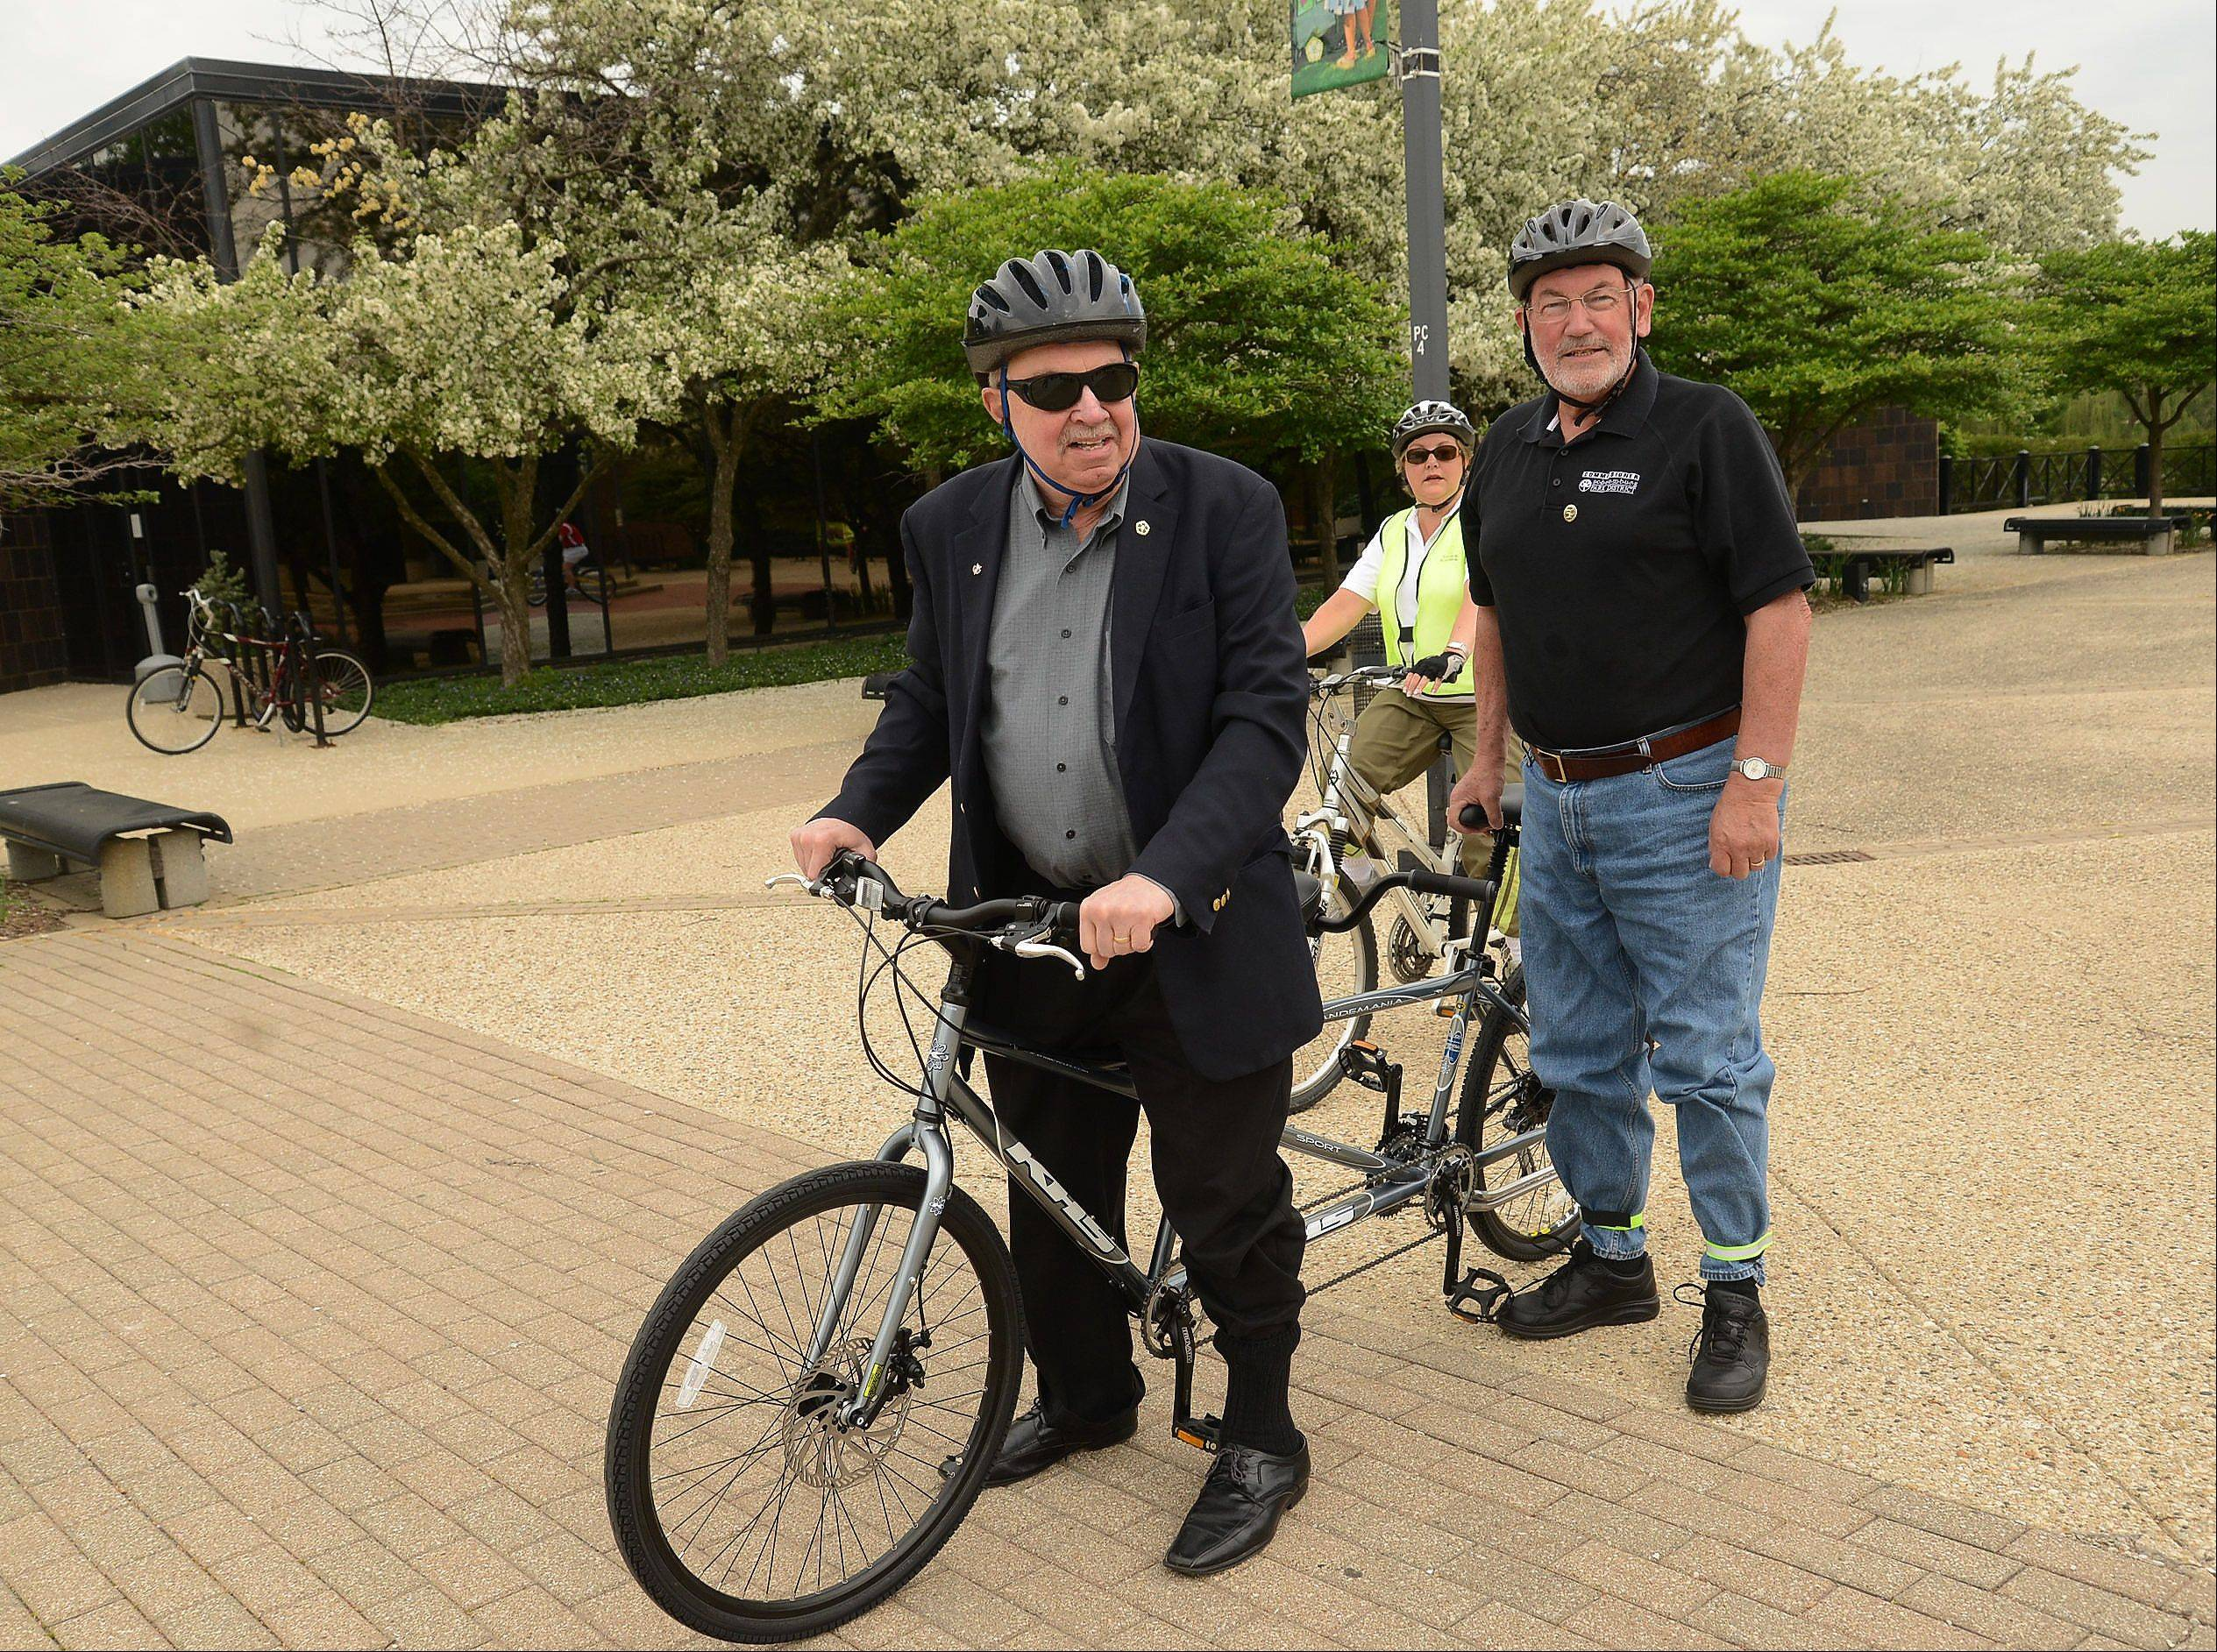 Schaumburg Mayor Al Larson and Schaumburg Park District Commissioner Bob Schmidt arrive safely at Larson's workplace of village hall after leading a bike ride from the Meineke Recreation Center to commemorate Bike to Work Week.